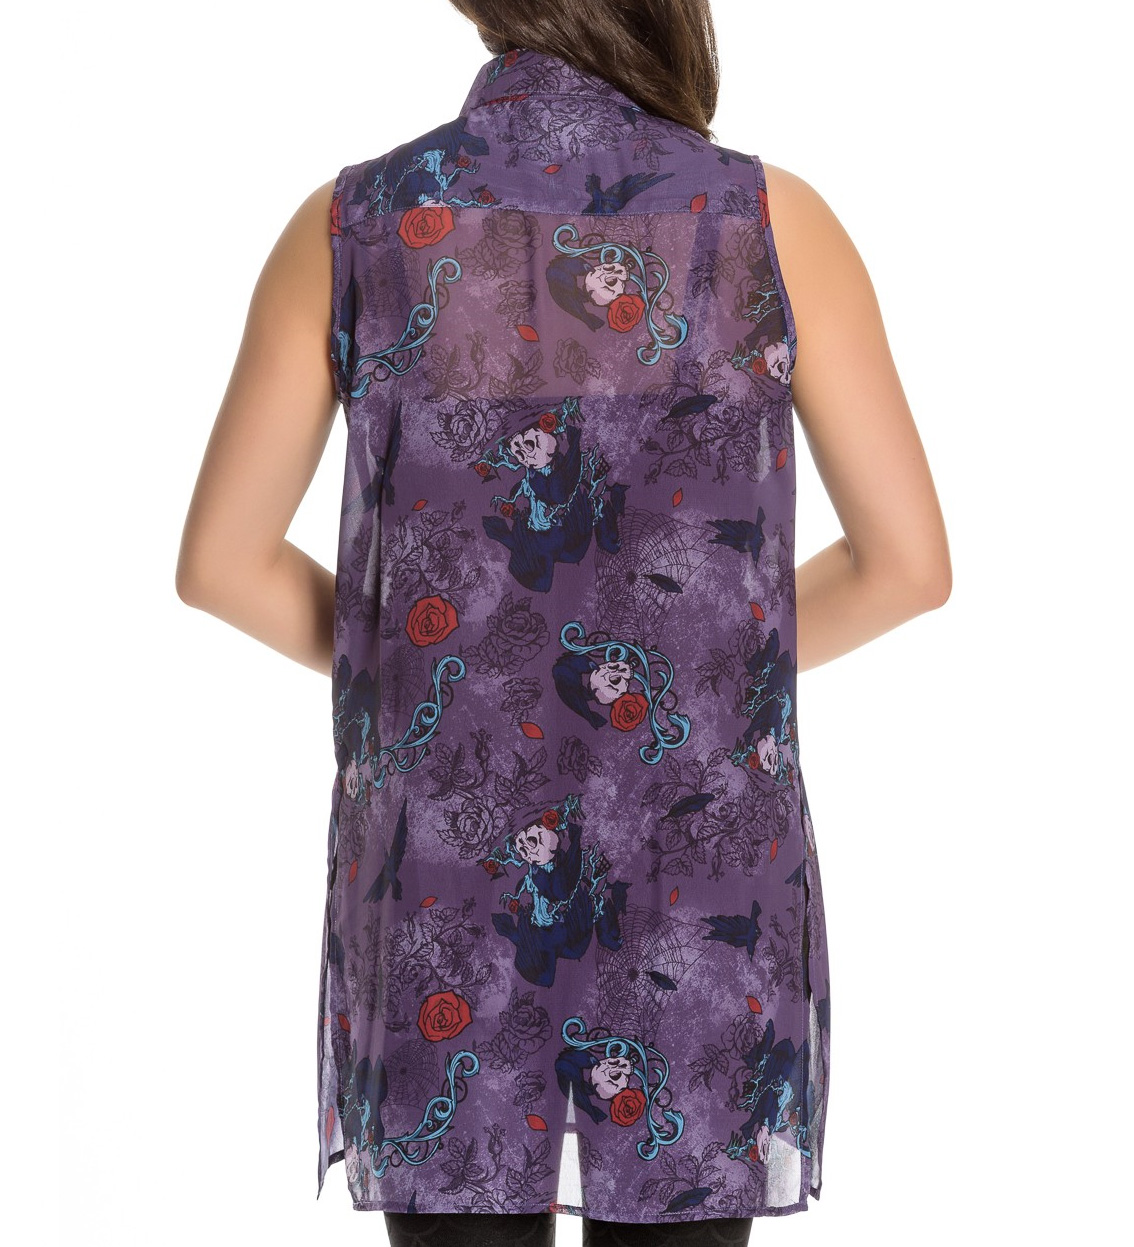 Hell-Bunny-Shirt-Top-Goth-Punk-Roses-Skulls-RAVEN-Purple-Blouse-All-Sizes thumbnail 33